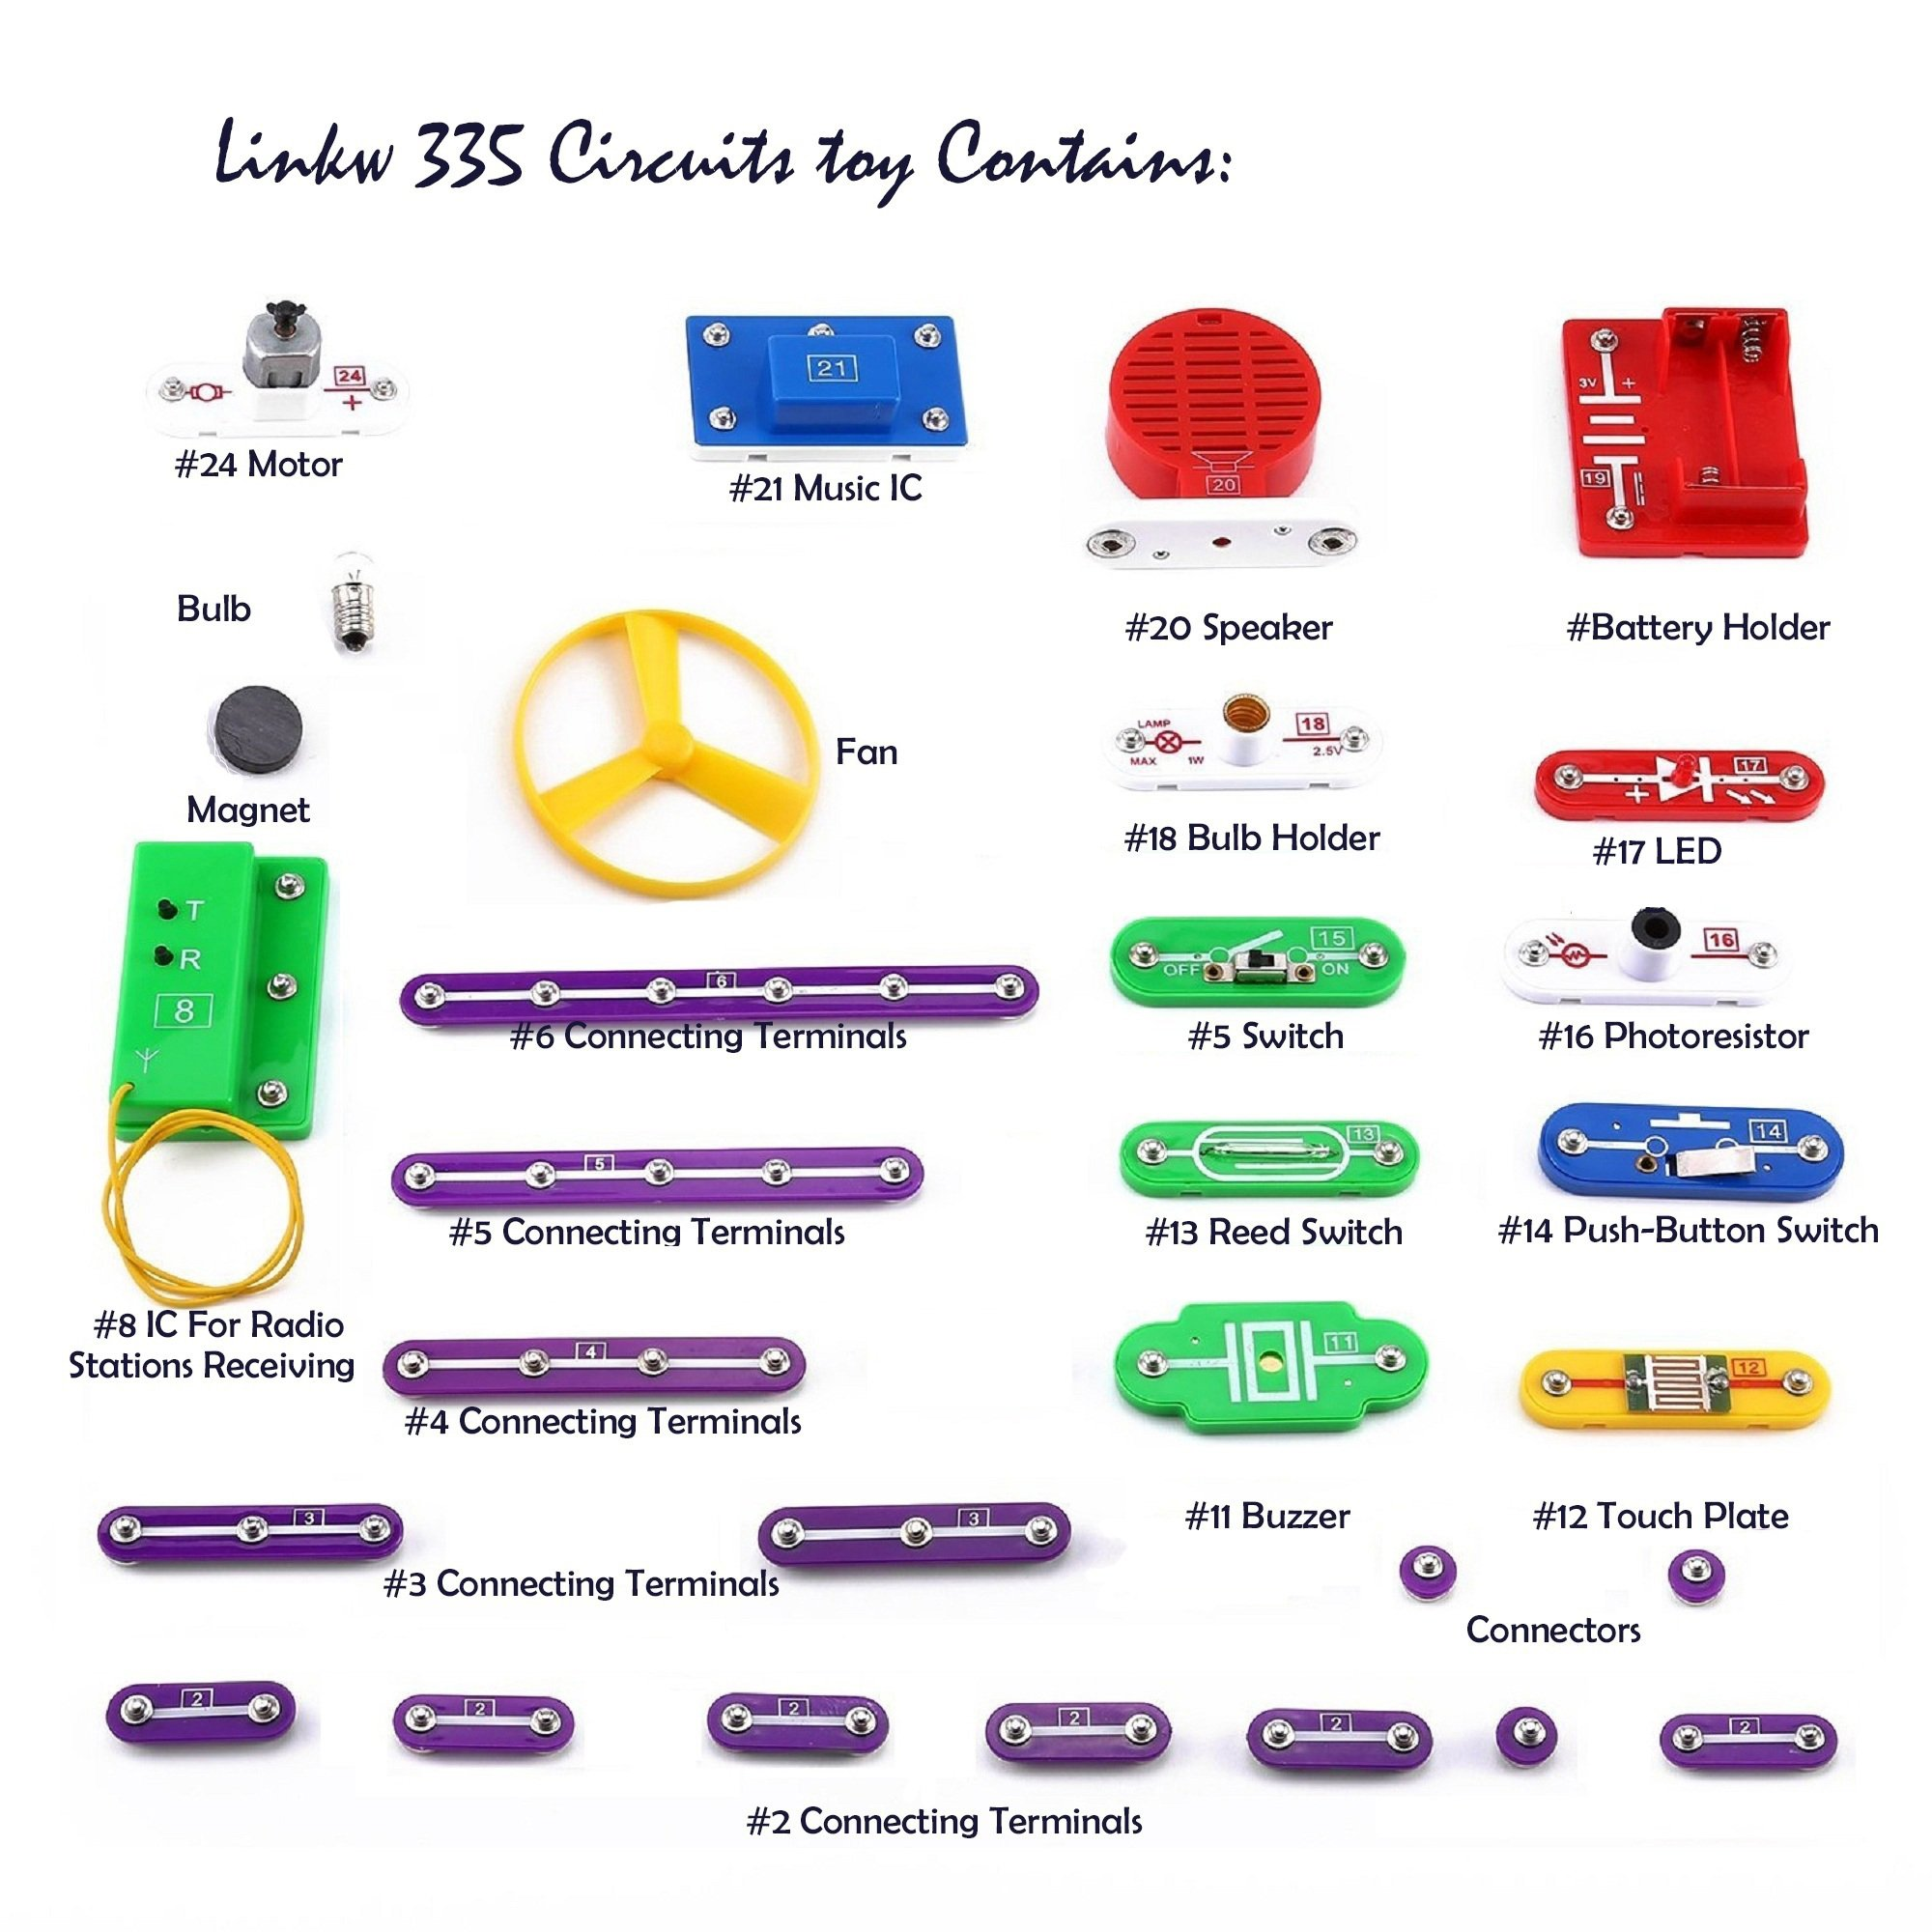 Ezlin 335 Diy Circuit Experiments,Science Kits,Electronic Discovery Kit Toy For